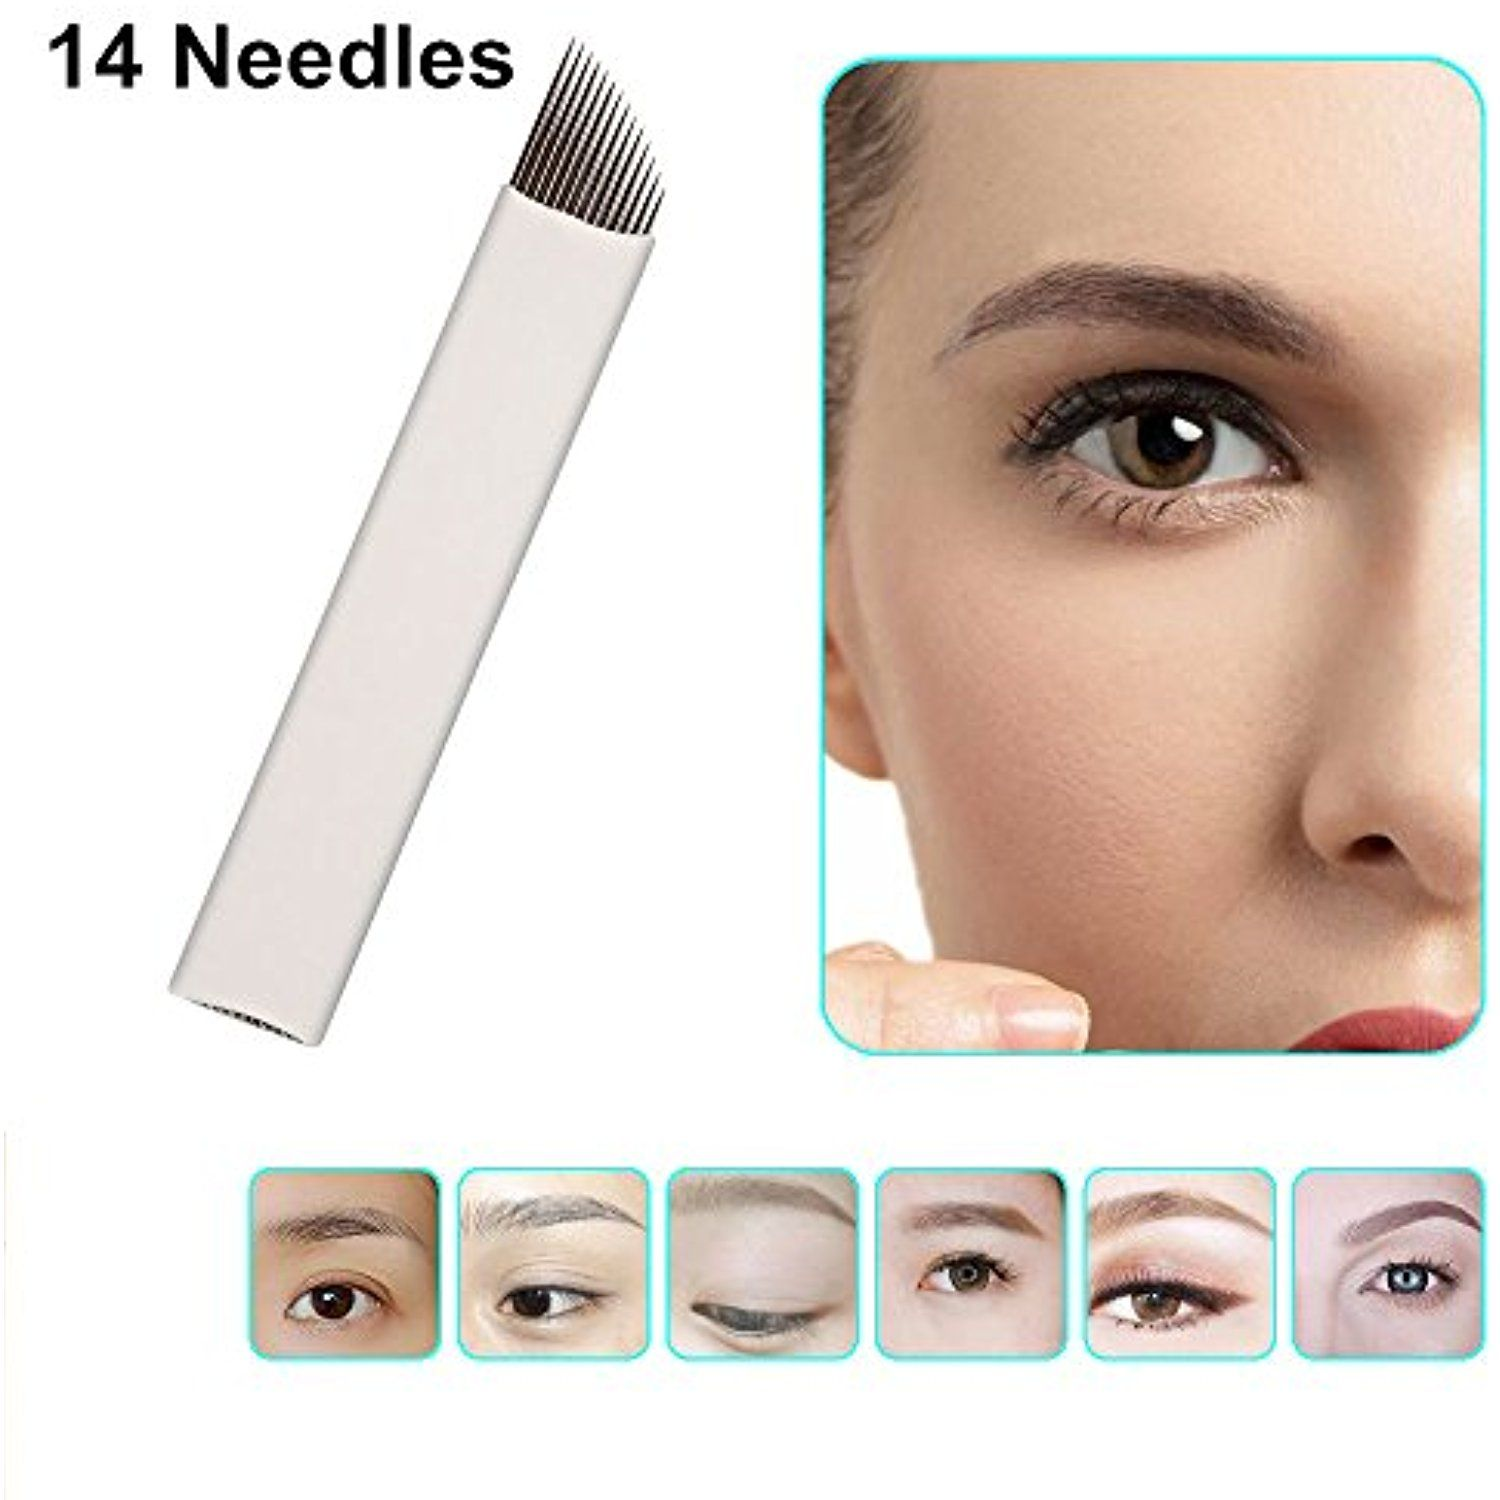 VideoPUP(TM) Permanent Makeup Manual Eyebrow 50pcs